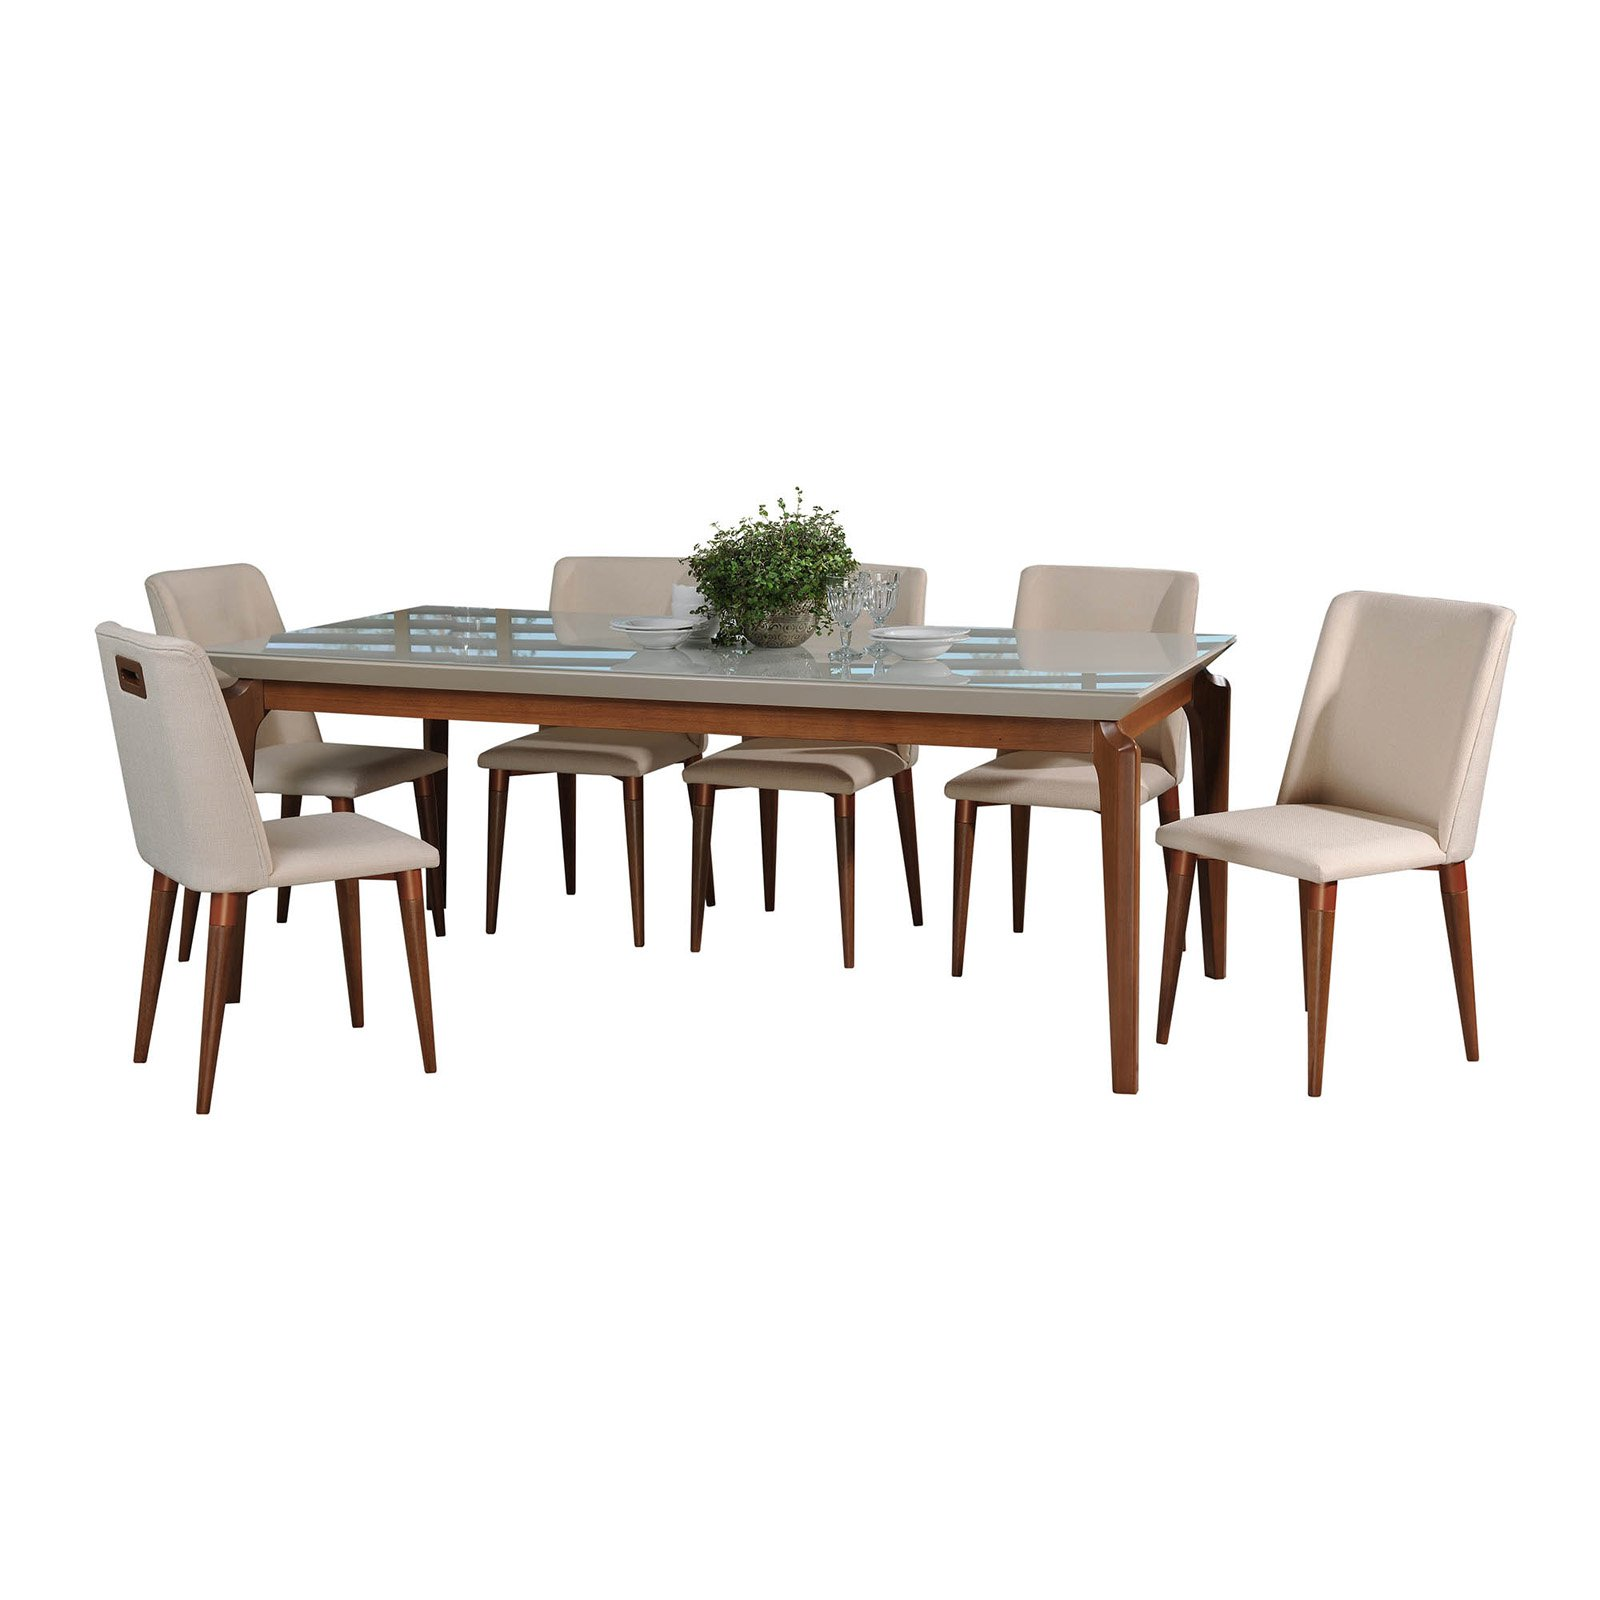 Manhattan Comfort Payson and Tampa 7 Piece Dining Table Set